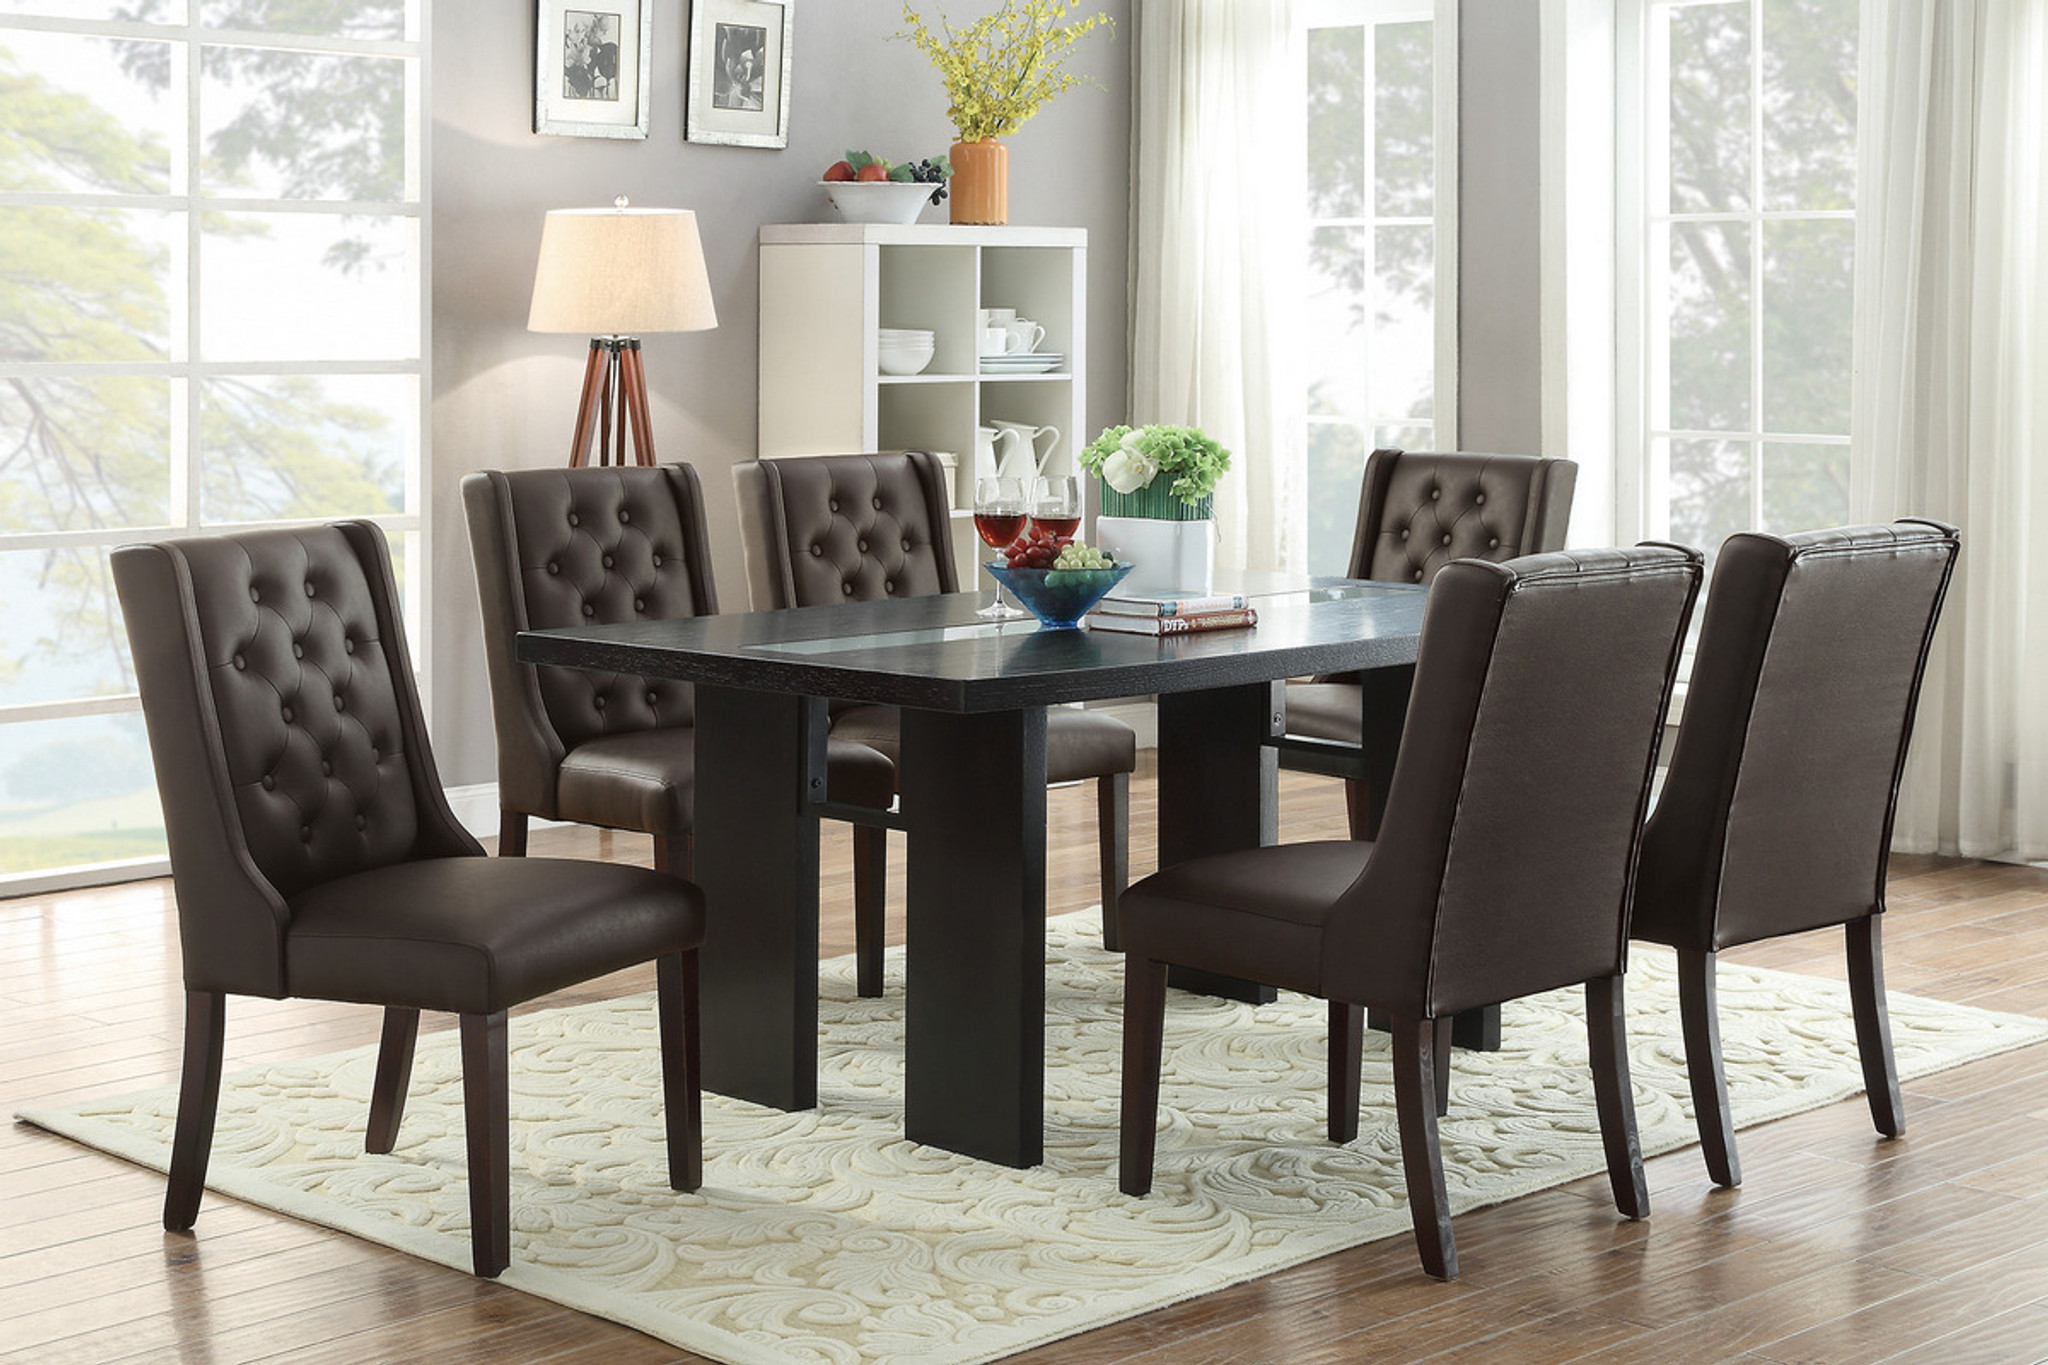 F2367 F1501 7pcs Wooden Top Espresso Dining Table Set By Poundex